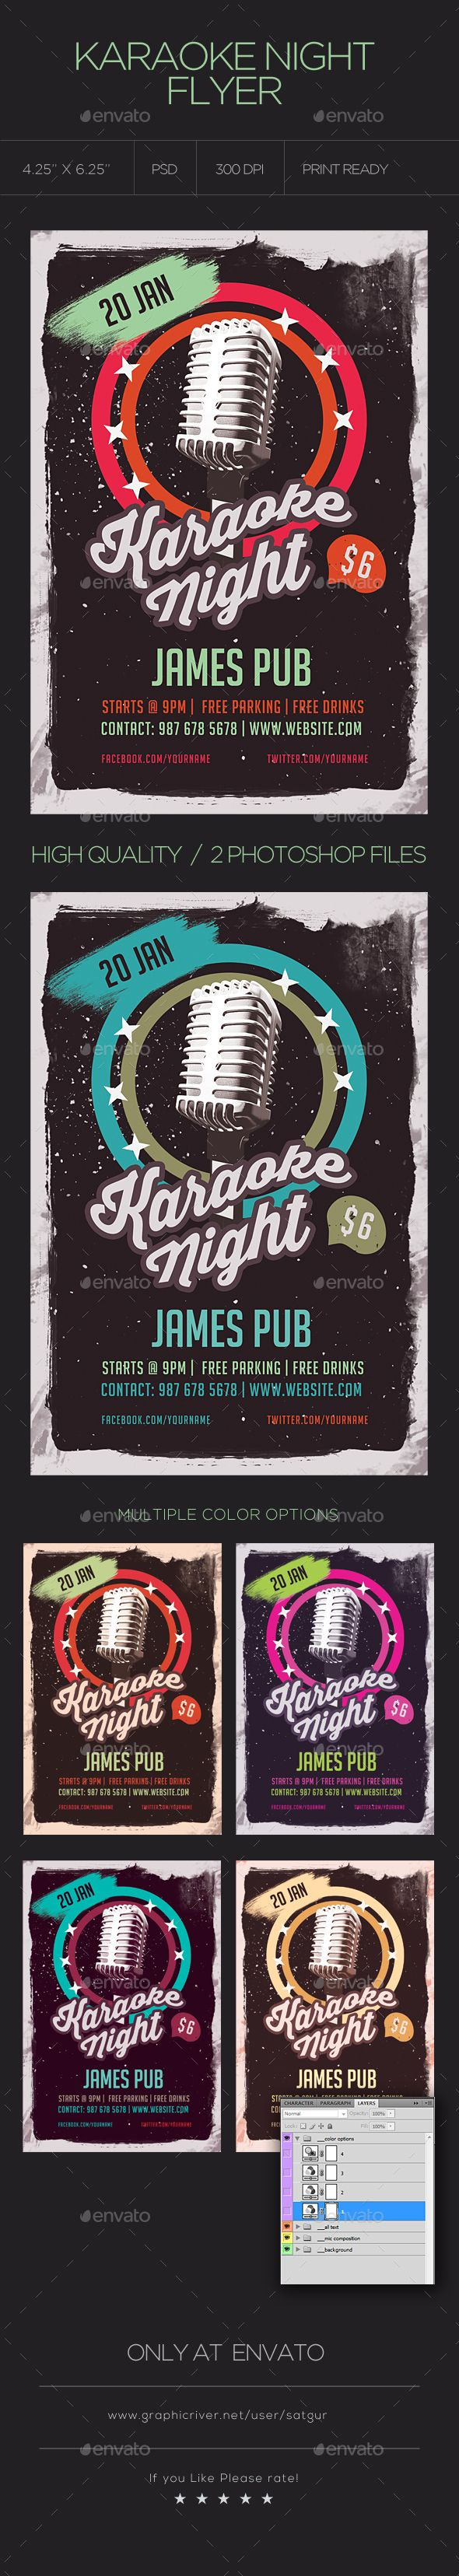 Karaoke Night Flyer  Karaoke Flyer Template And Font Logo